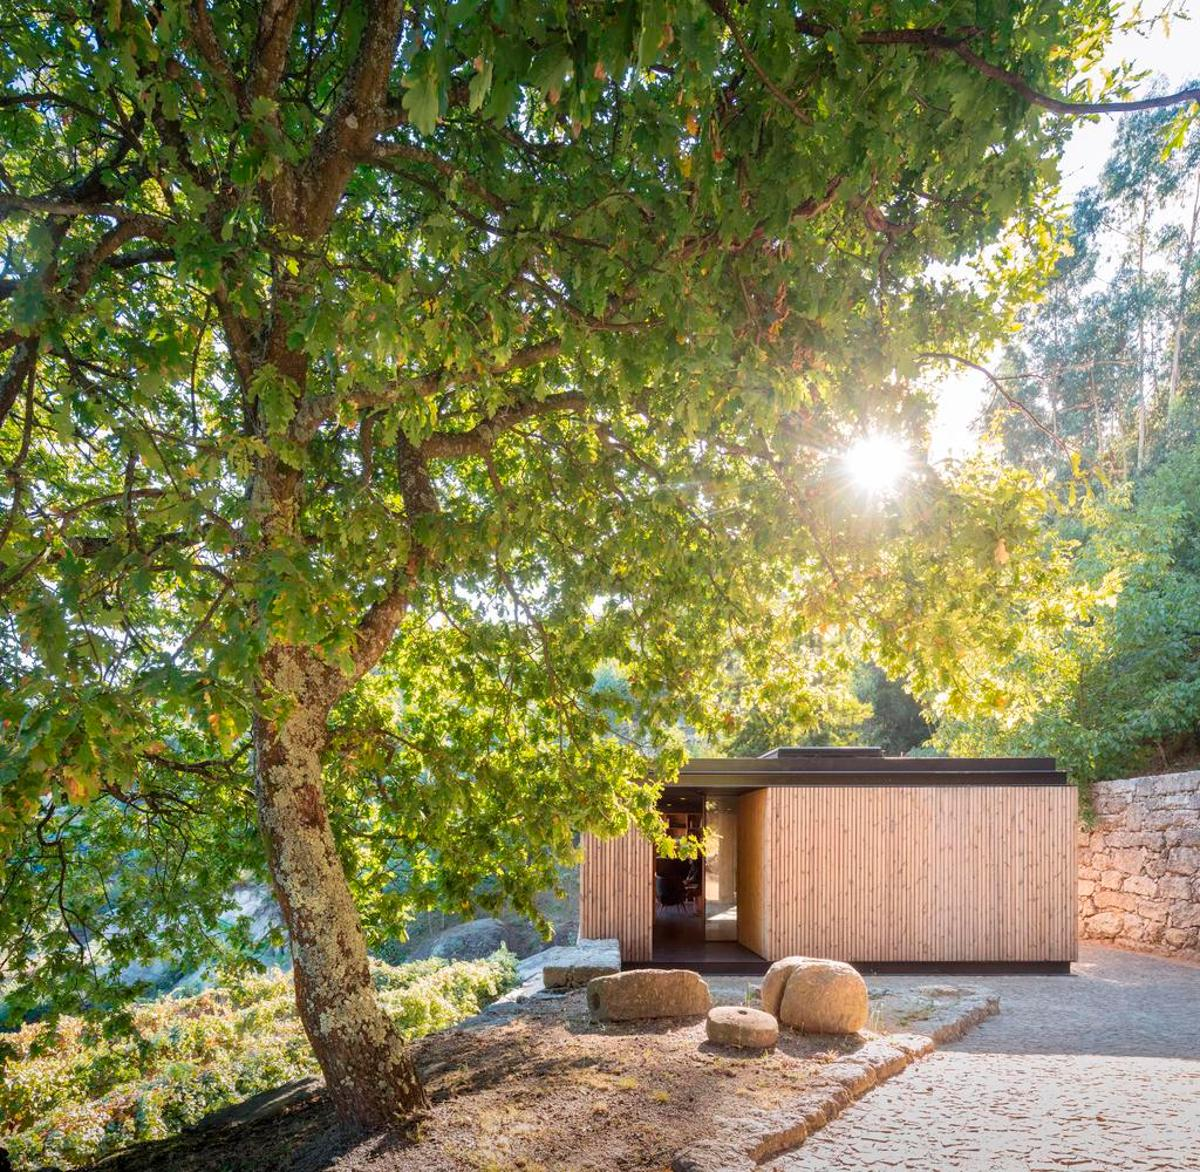 Pavilion House was created as an idyllic guest home in Portugal